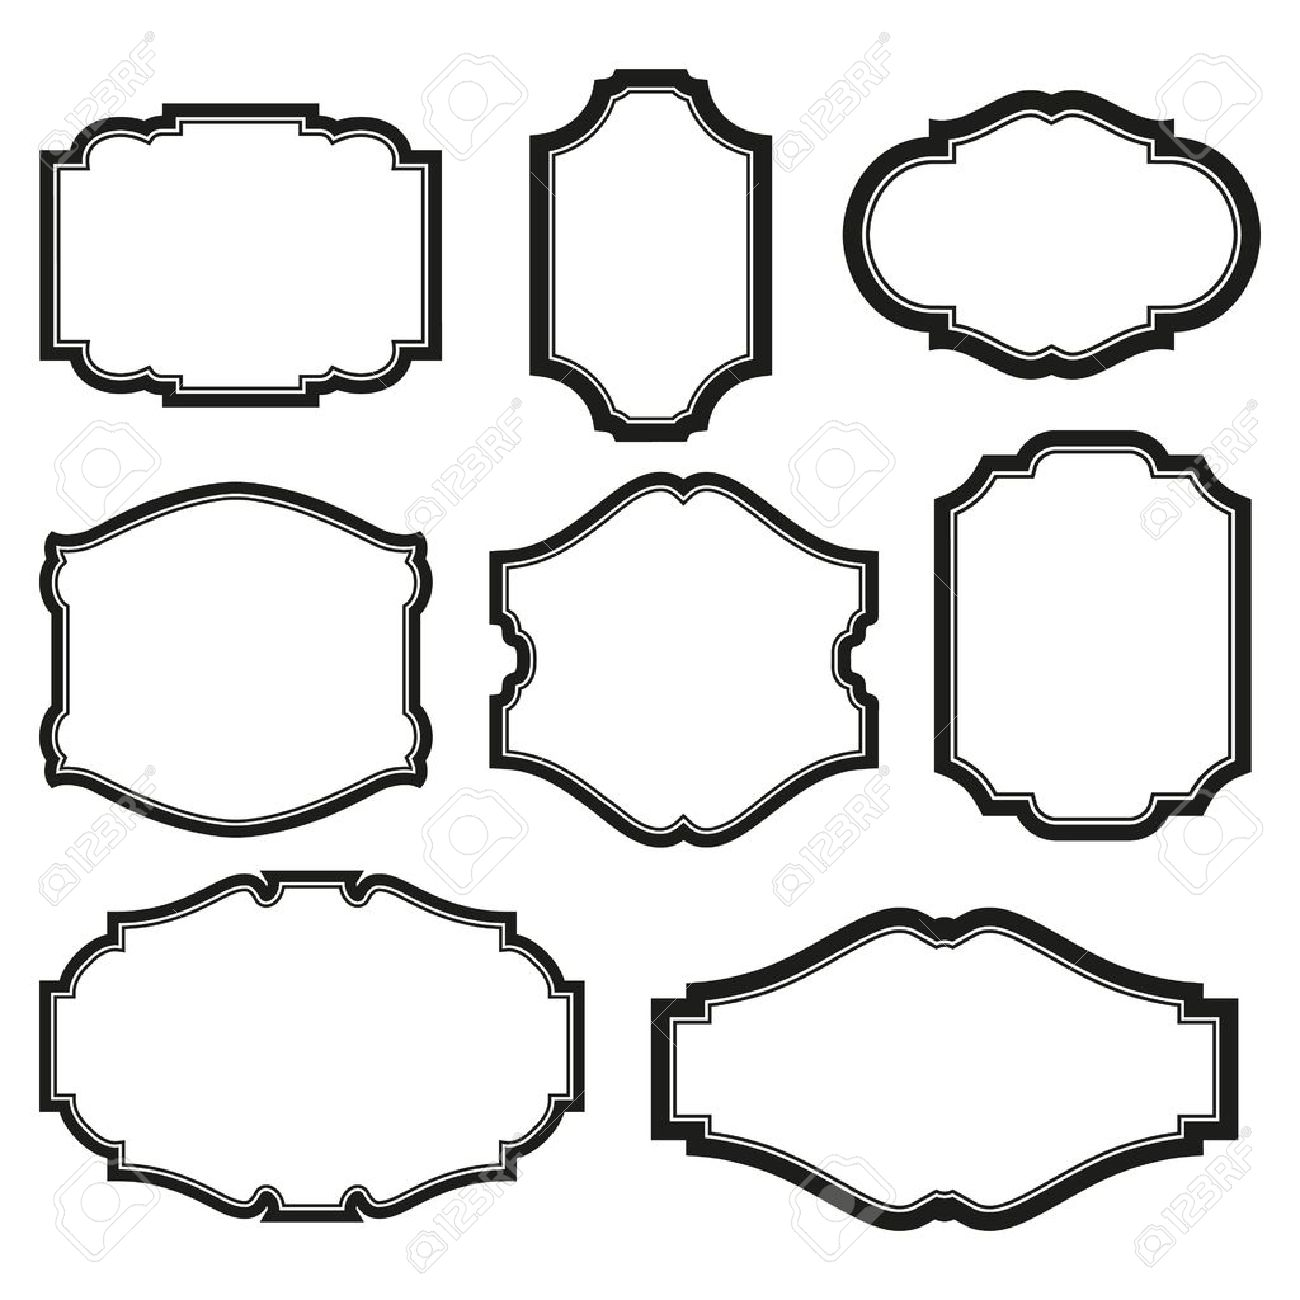 vector baroque simple set of black frames isolated on white